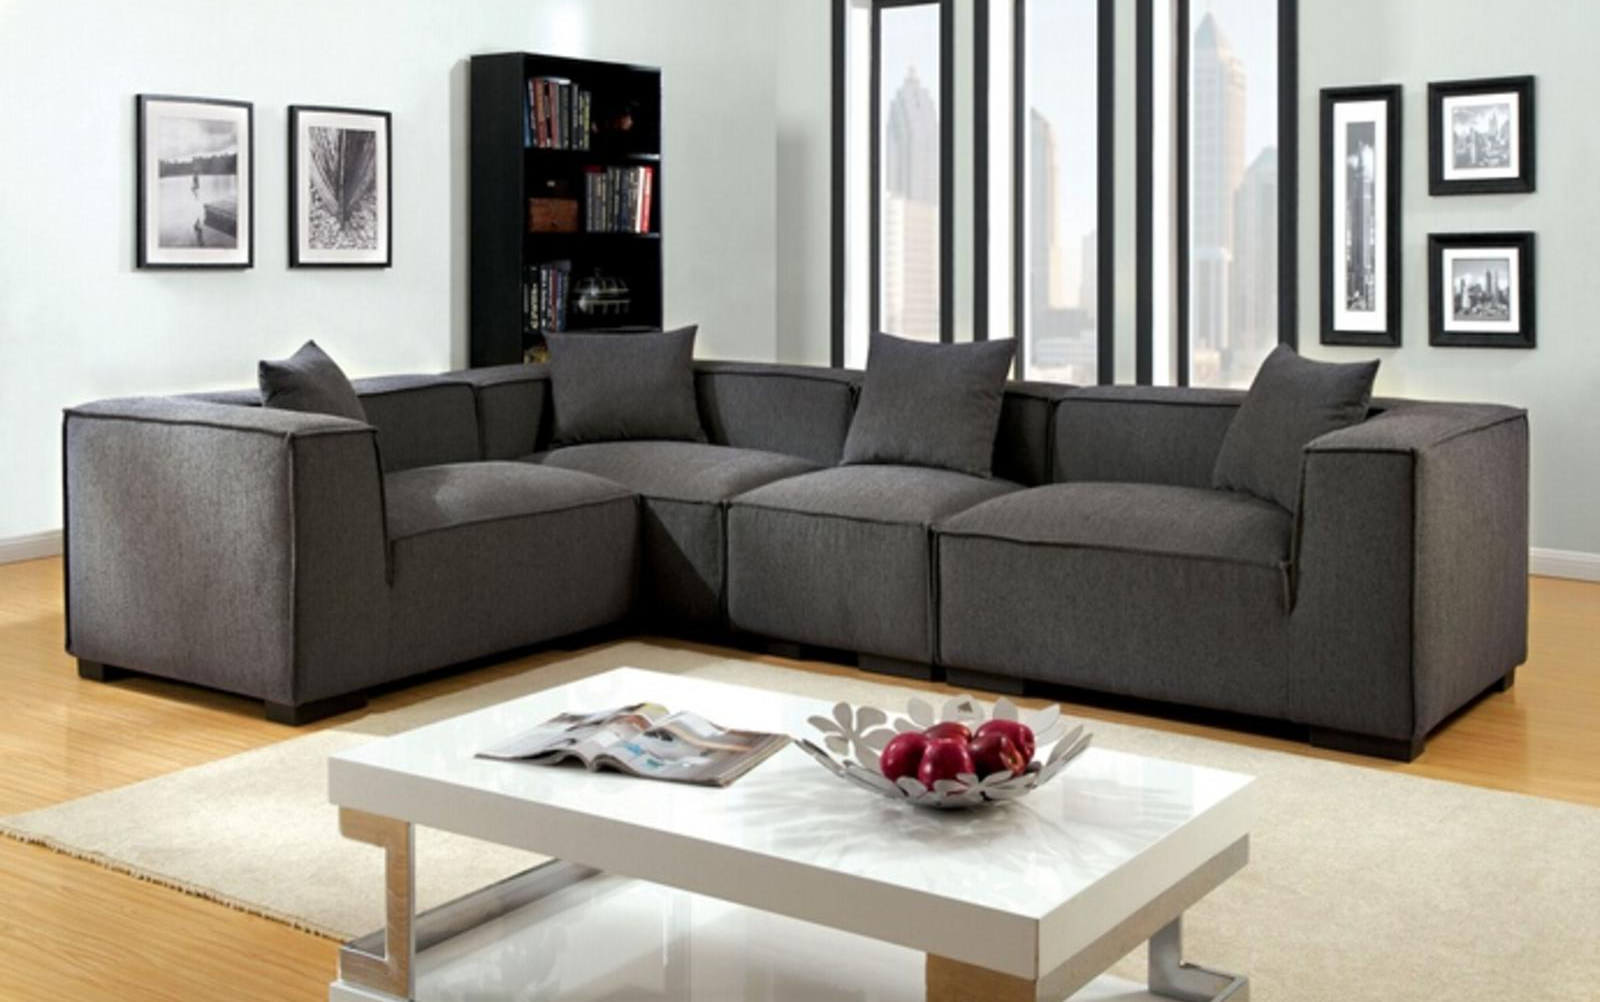 Grey Fabric Upholstered Modular Sectional Sofa Set